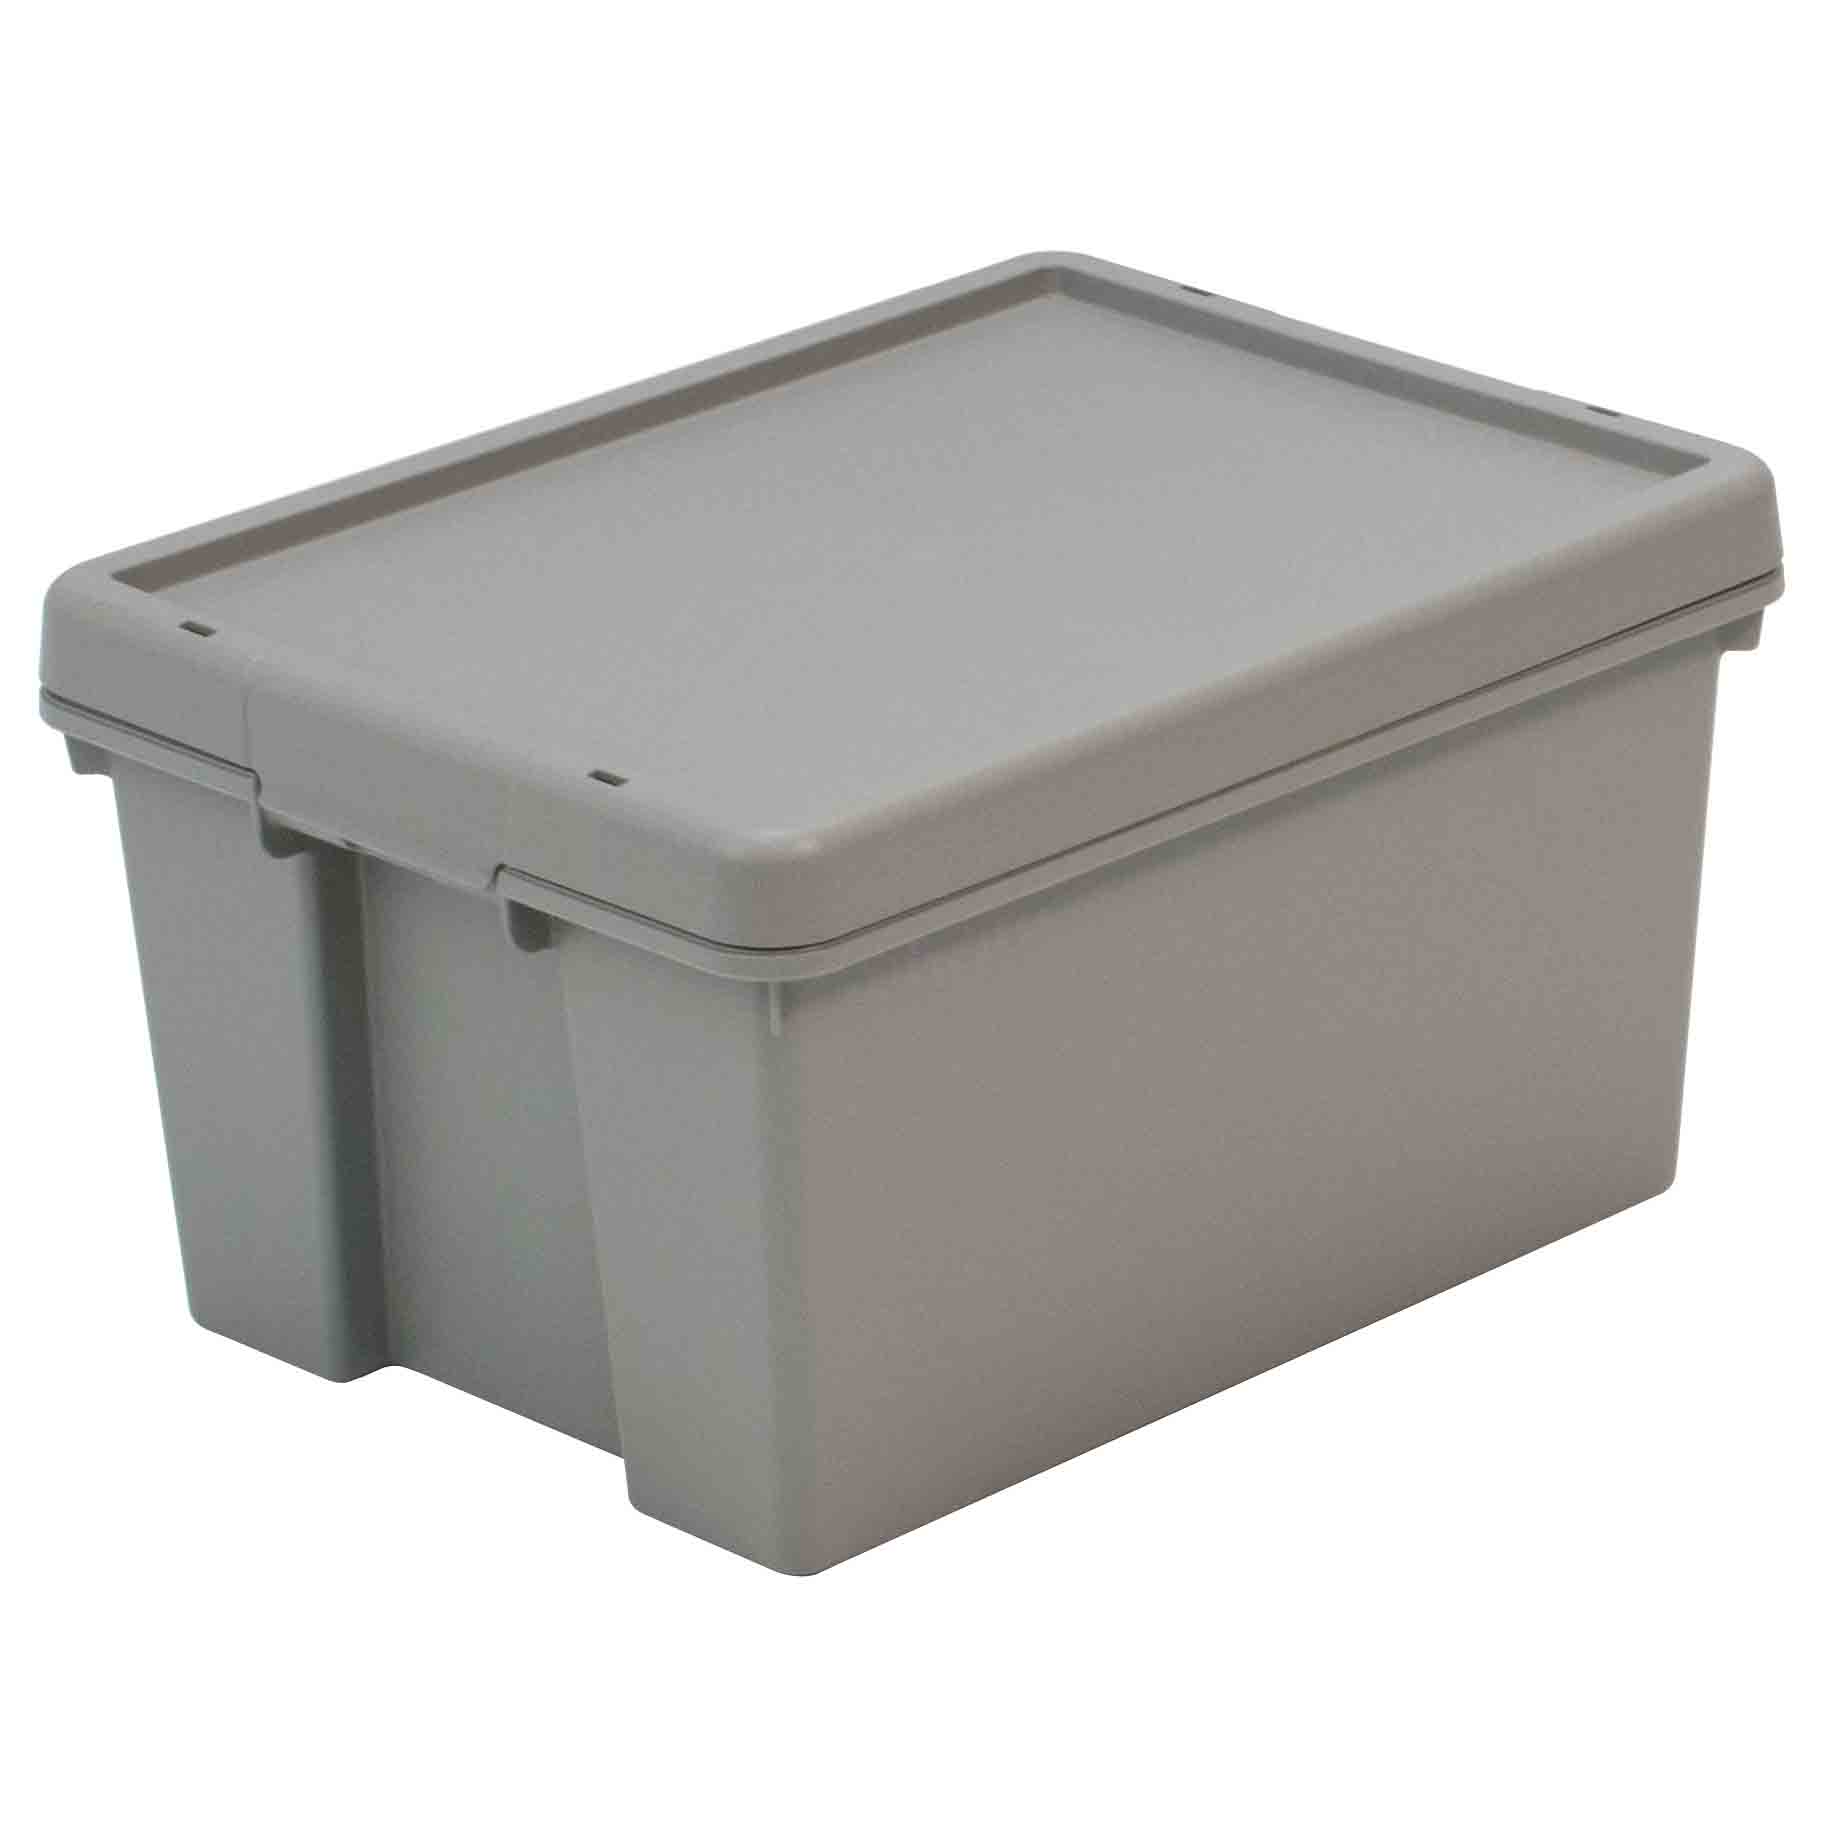 16 Litre Upcycled Plastic Storage Box